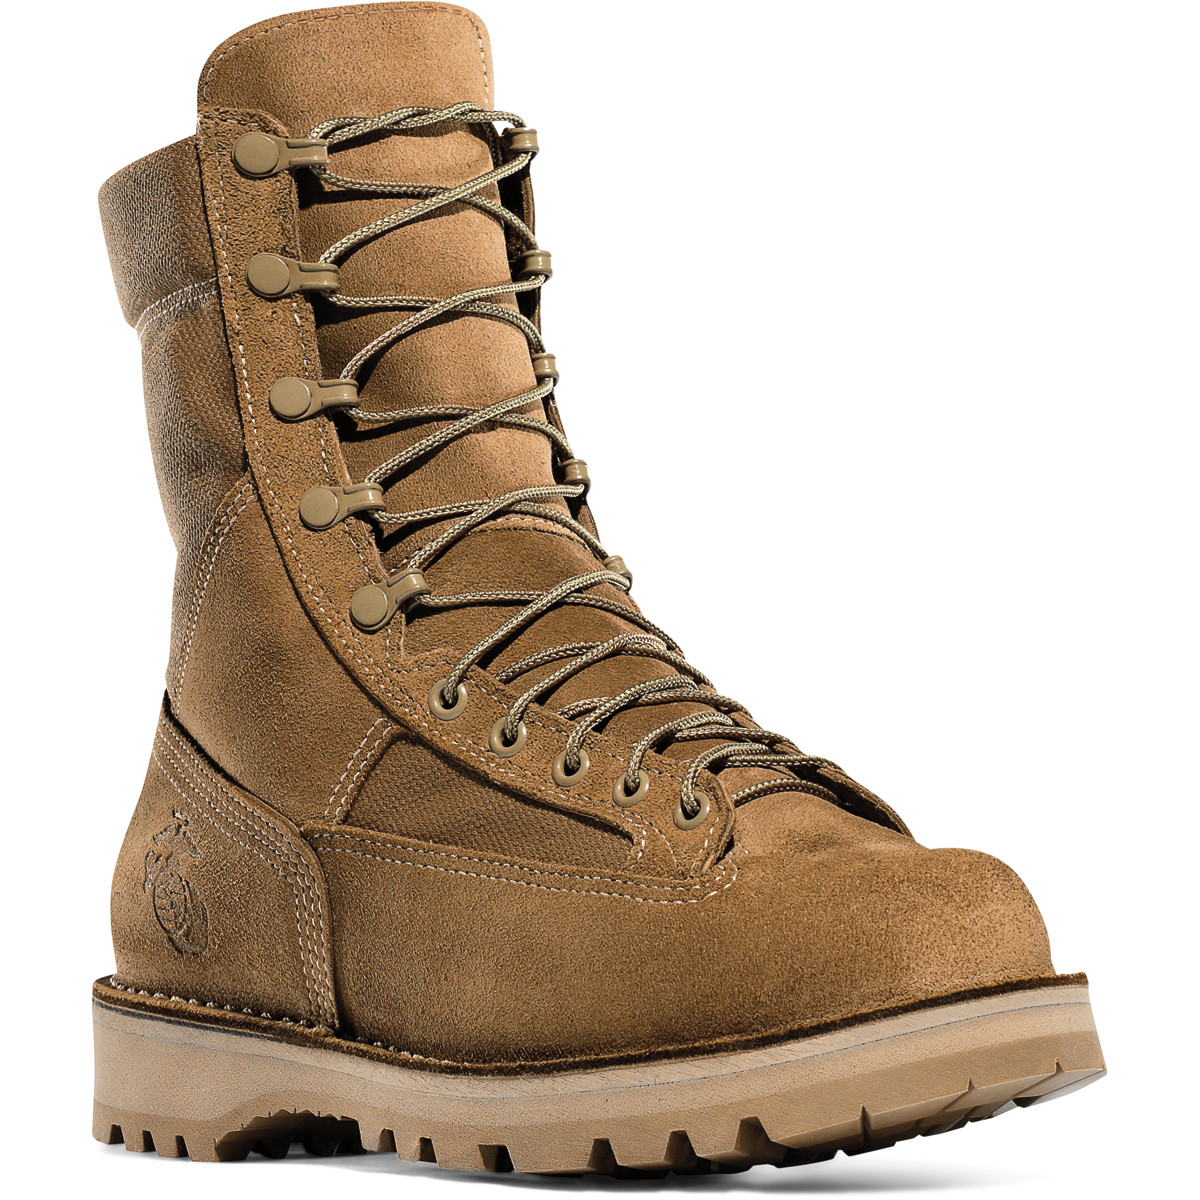 Danner Marine 8 Inch Waterproof Goretex Military Boot 26025